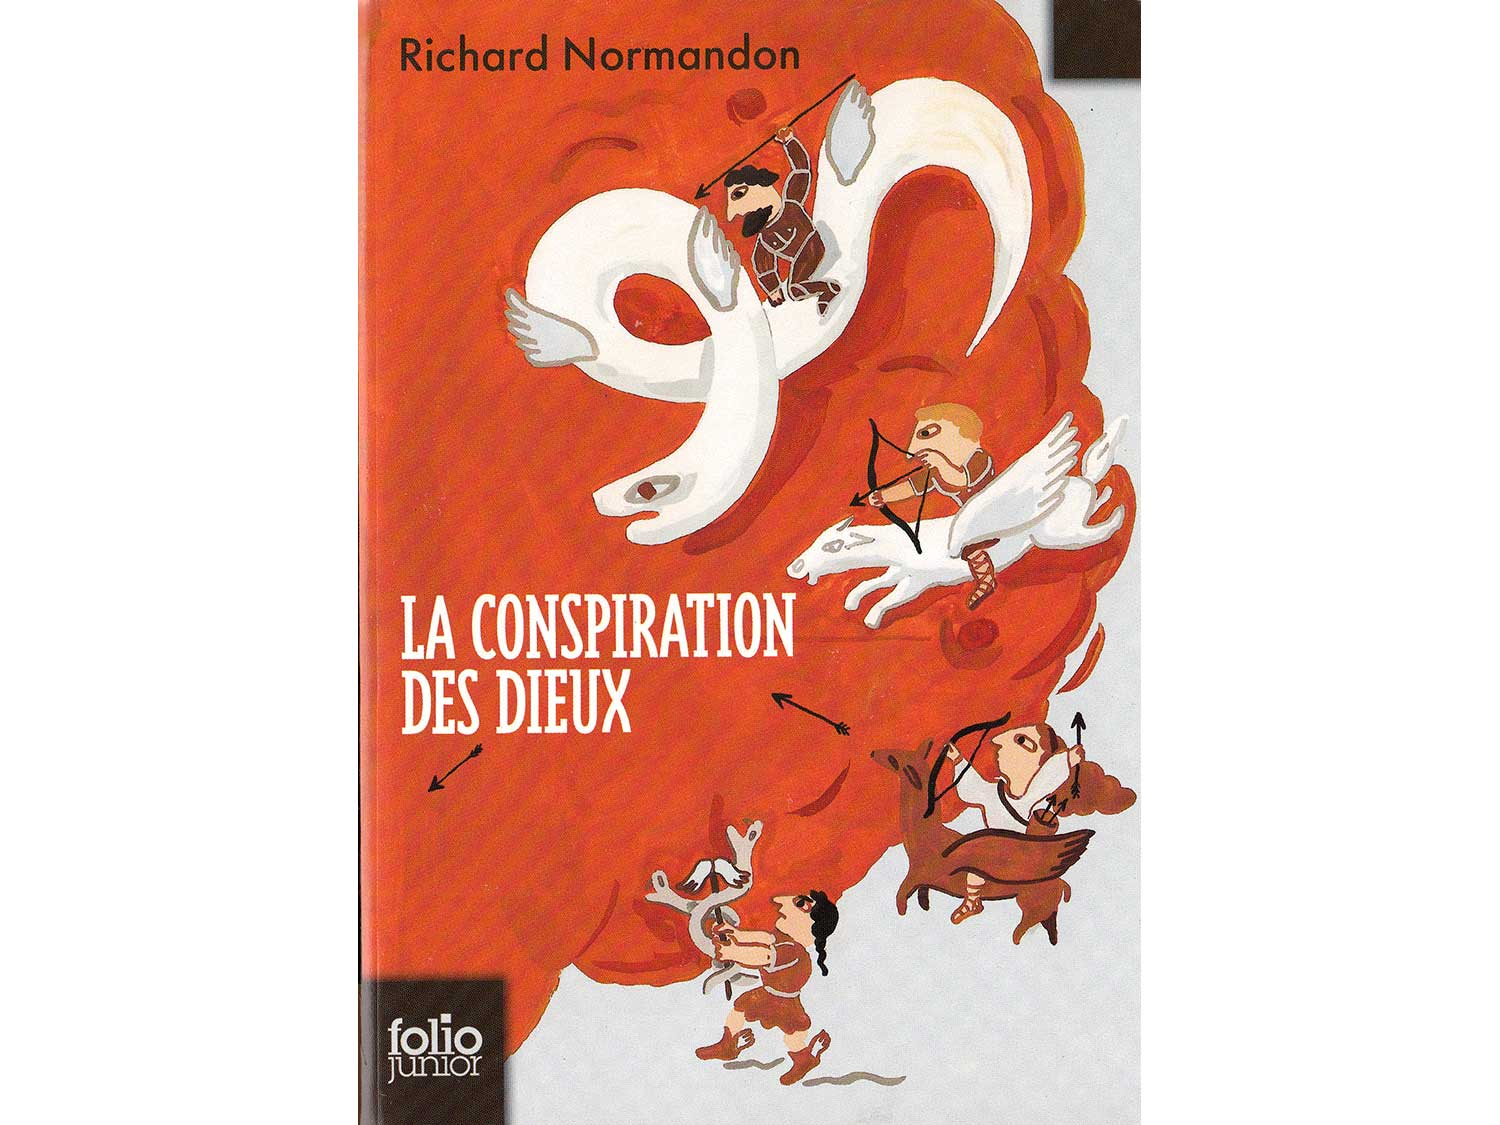 La conspiration des dieux - Richard Normandon / © Magali Bardos